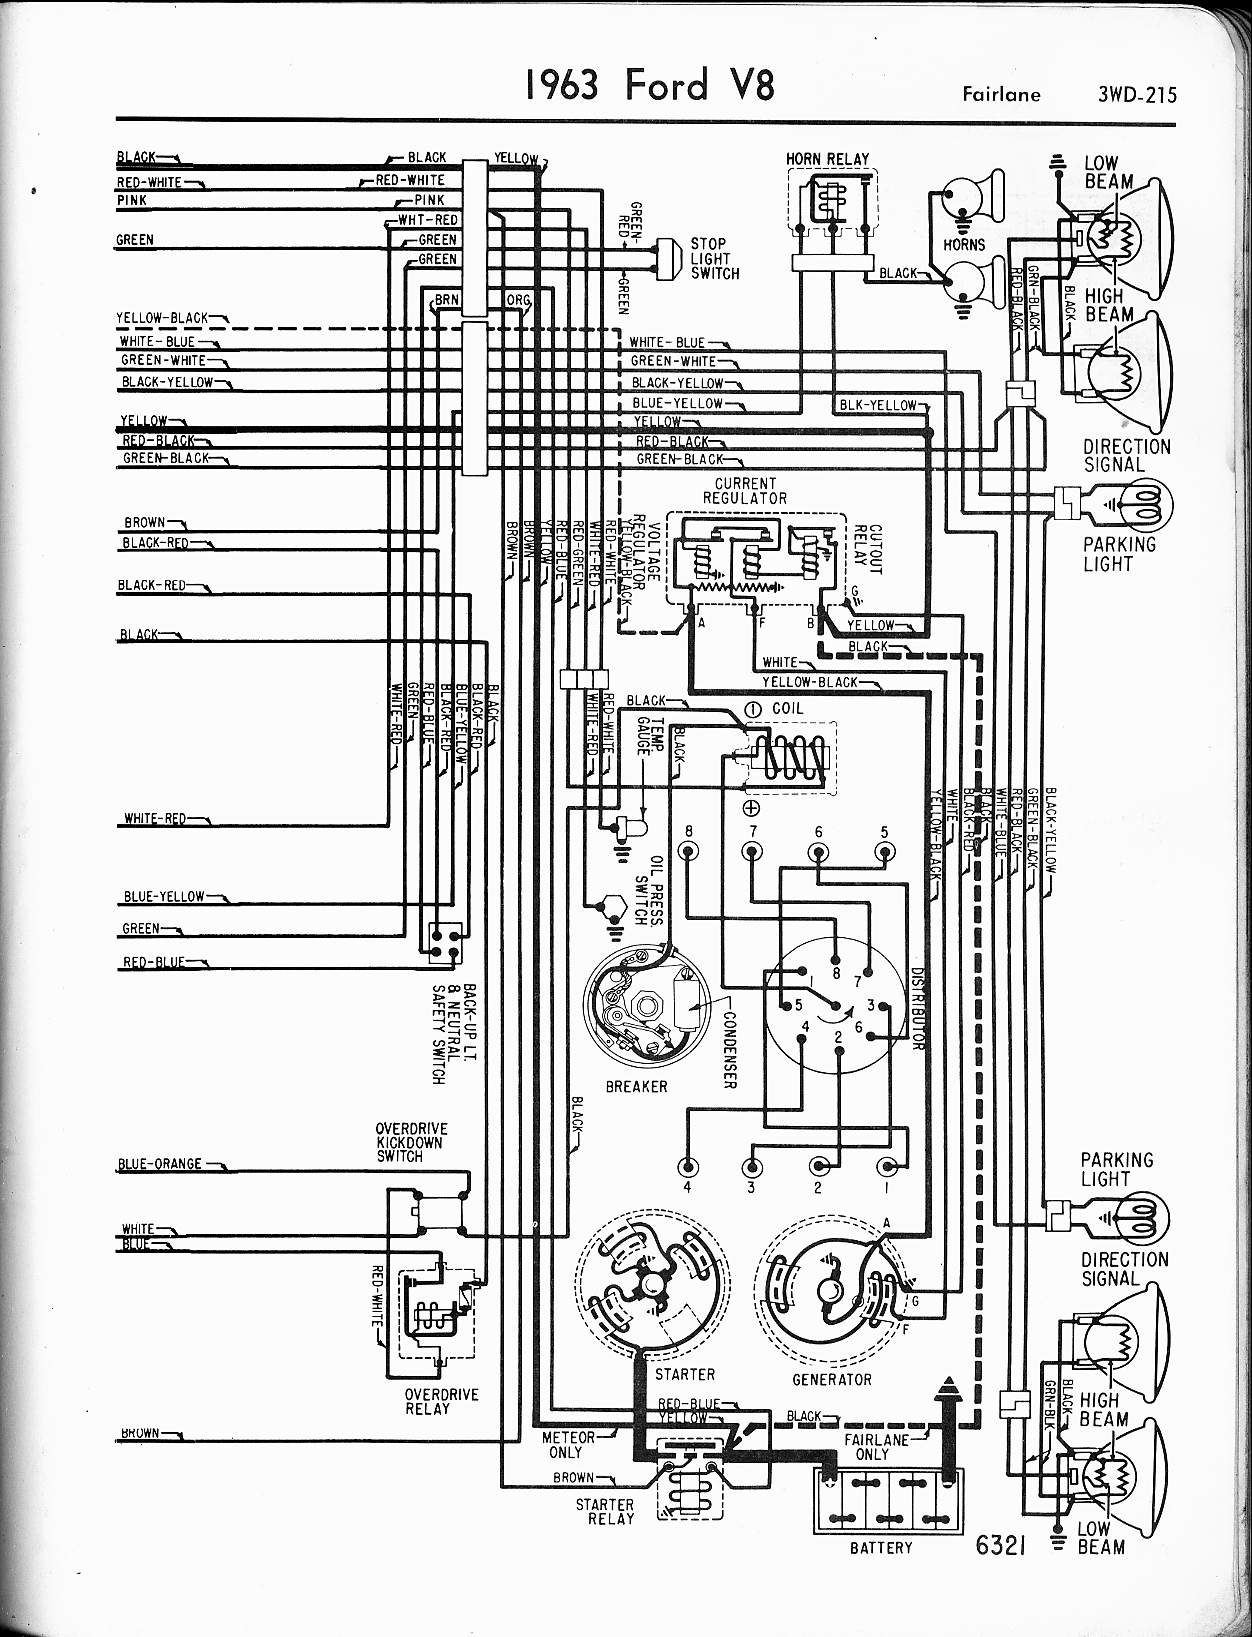 MWire5765 215 57 65 ford wiring diagrams 1963 ford falcon wiring harness at gsmx.co